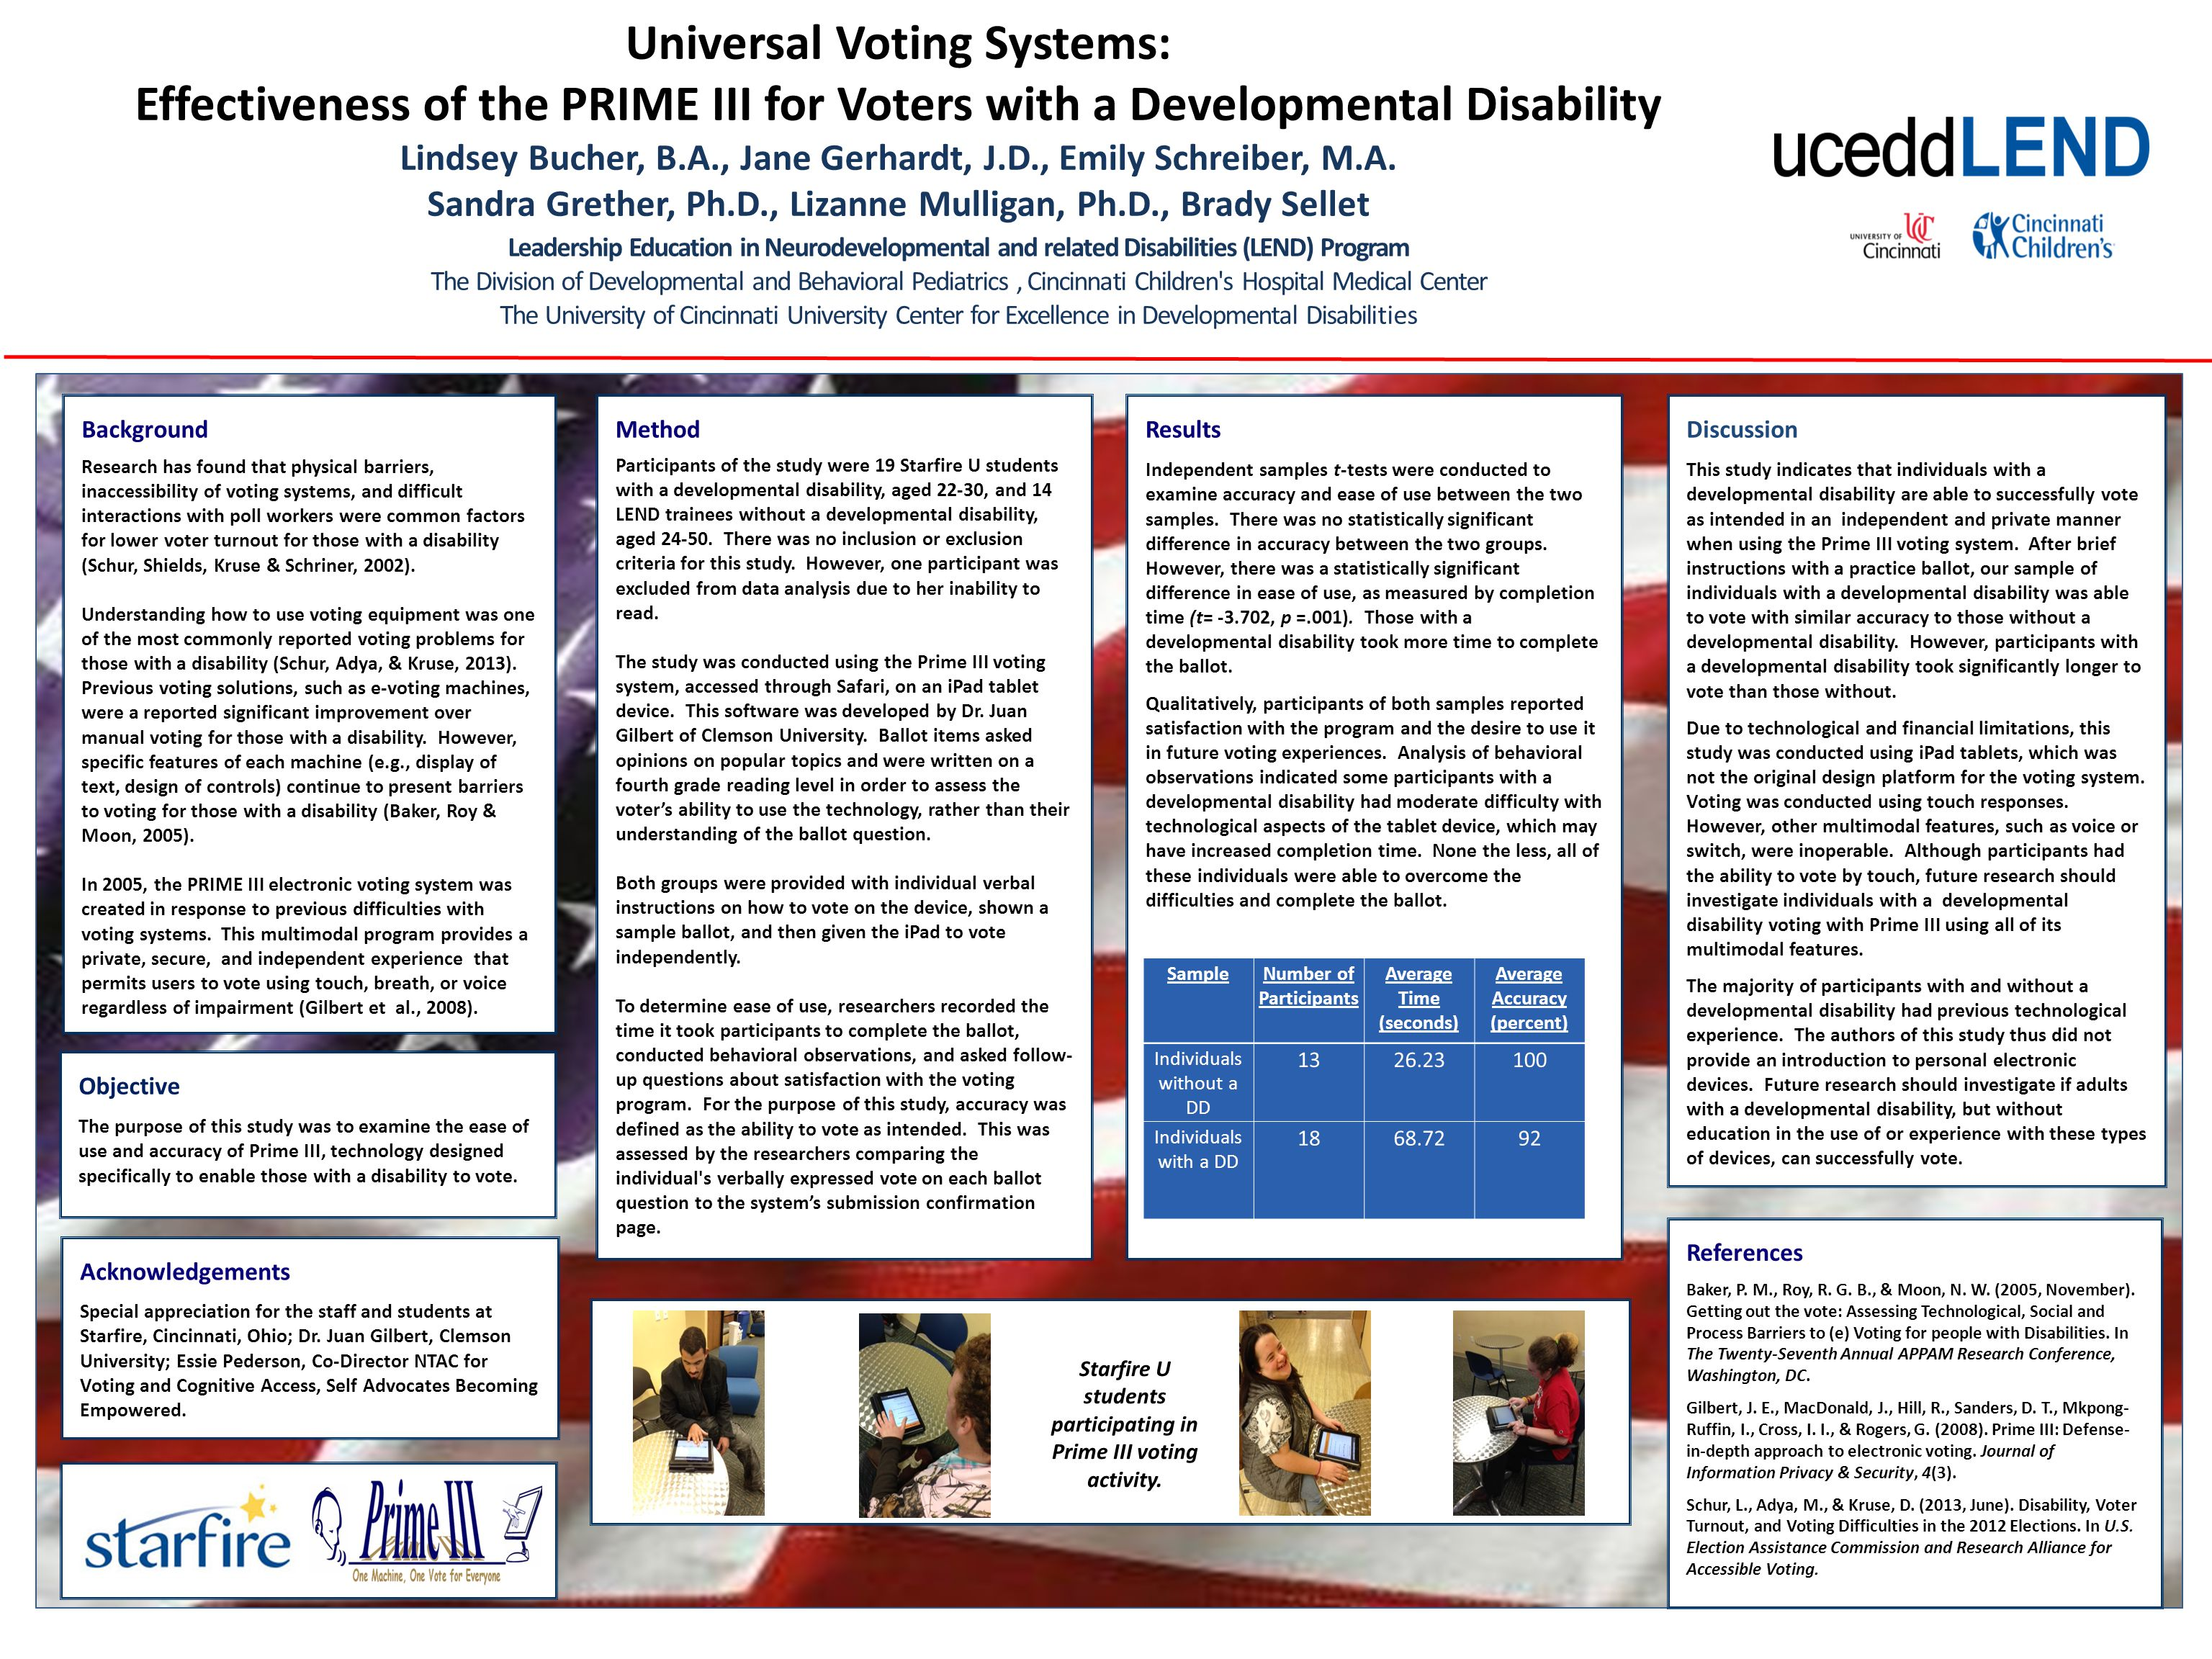 Objective The purpose of this study was to examine the ease of use and accuracy of Prime III, technology designed specifically to enable those with a disability to vote.